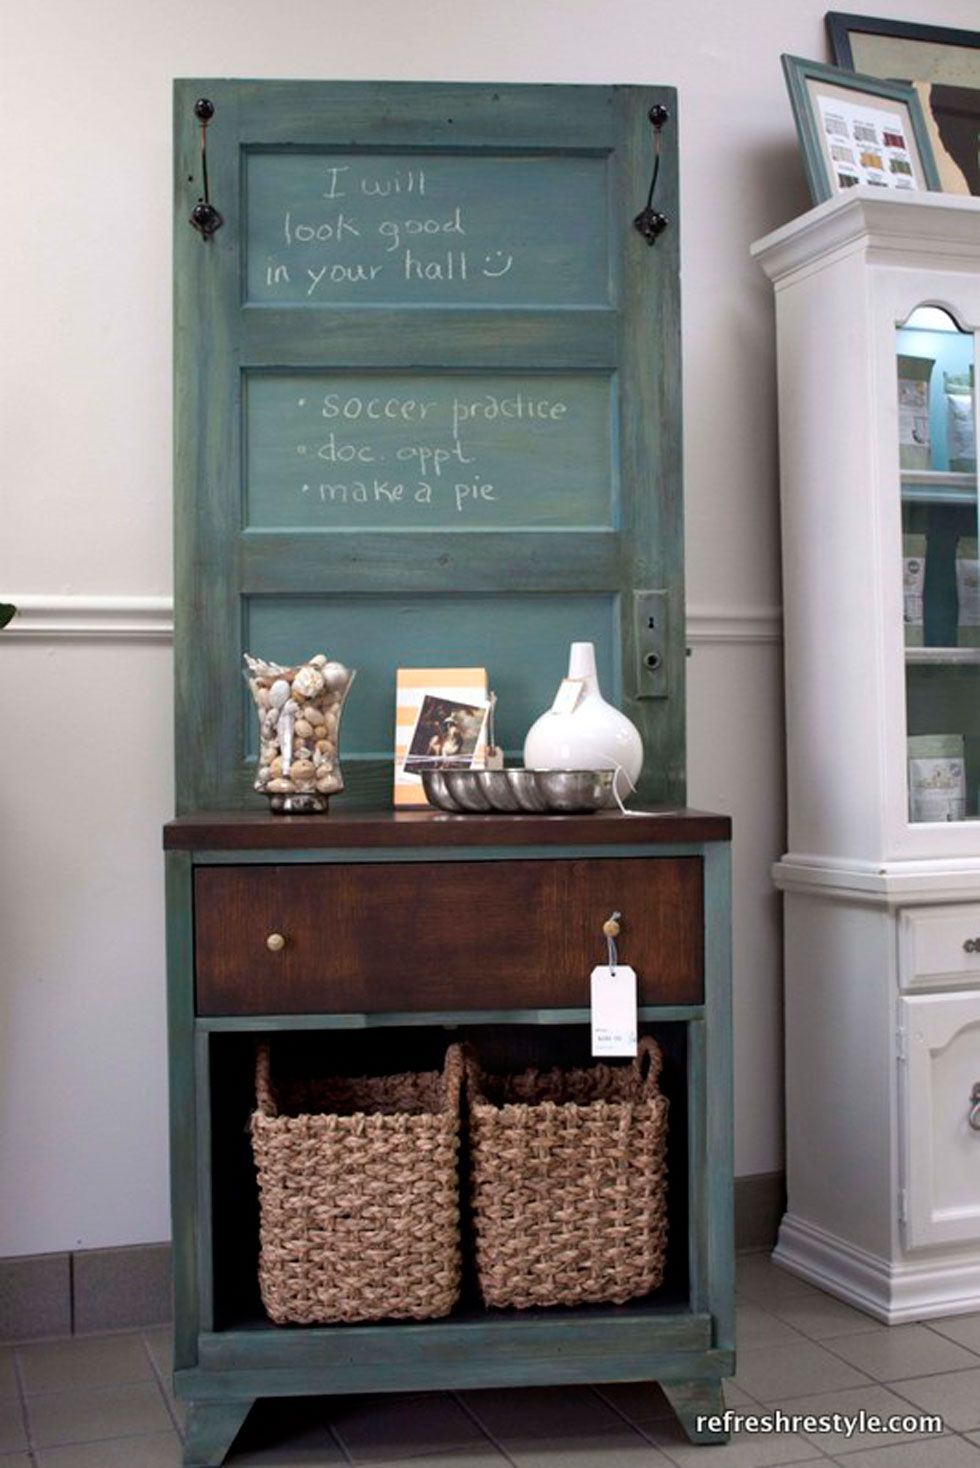 17 Creative Ways to Repurpose an Old Door : door projects - pezcame.com